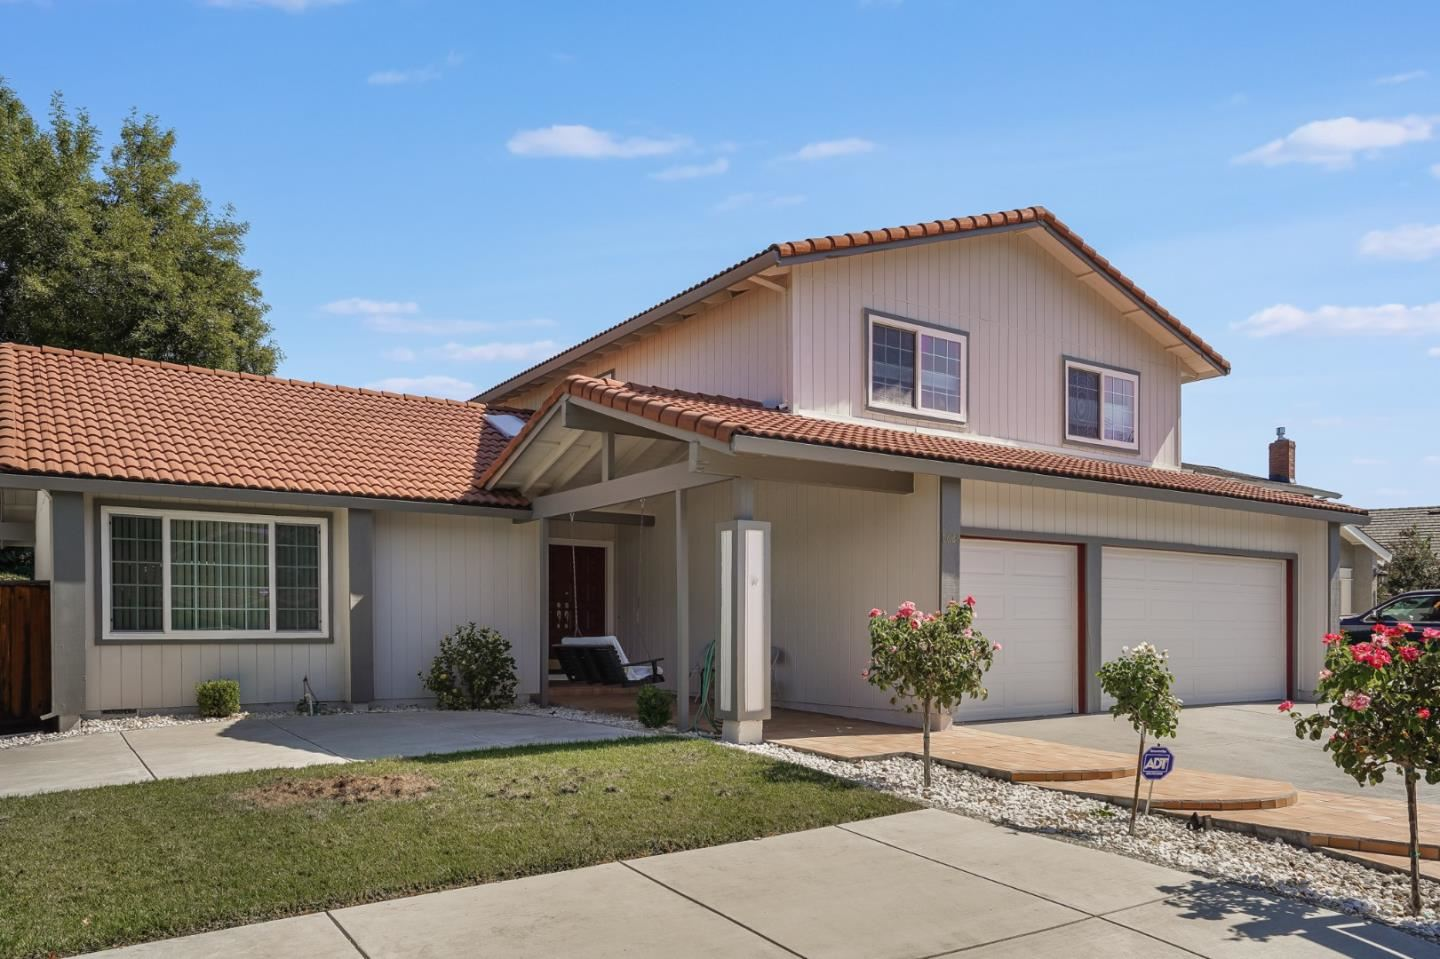 Photo for 6628 Barnsdale Court, SAN JOSE, CA 95120 (MLS # ML81862786)